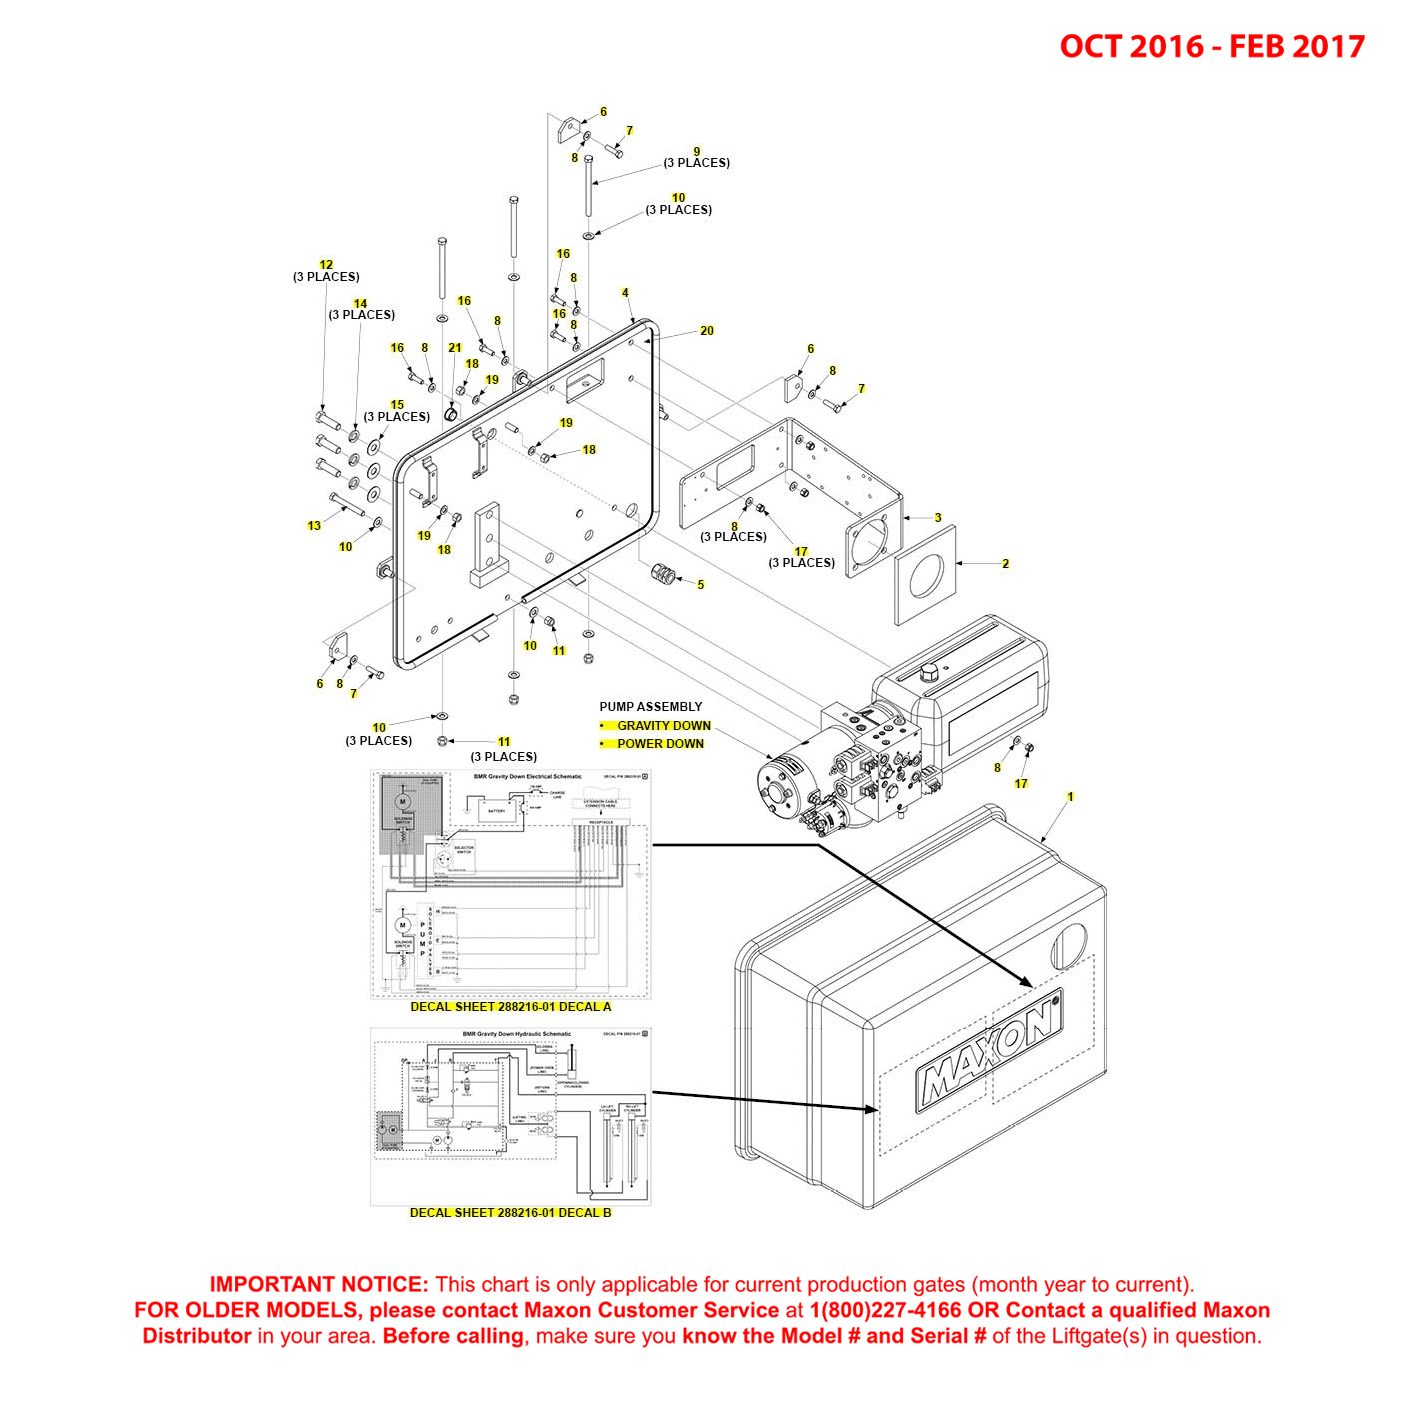 BMR (Oct 2016 - Feb 2017) Pump Cover Mounting Plate Assembly Diagram